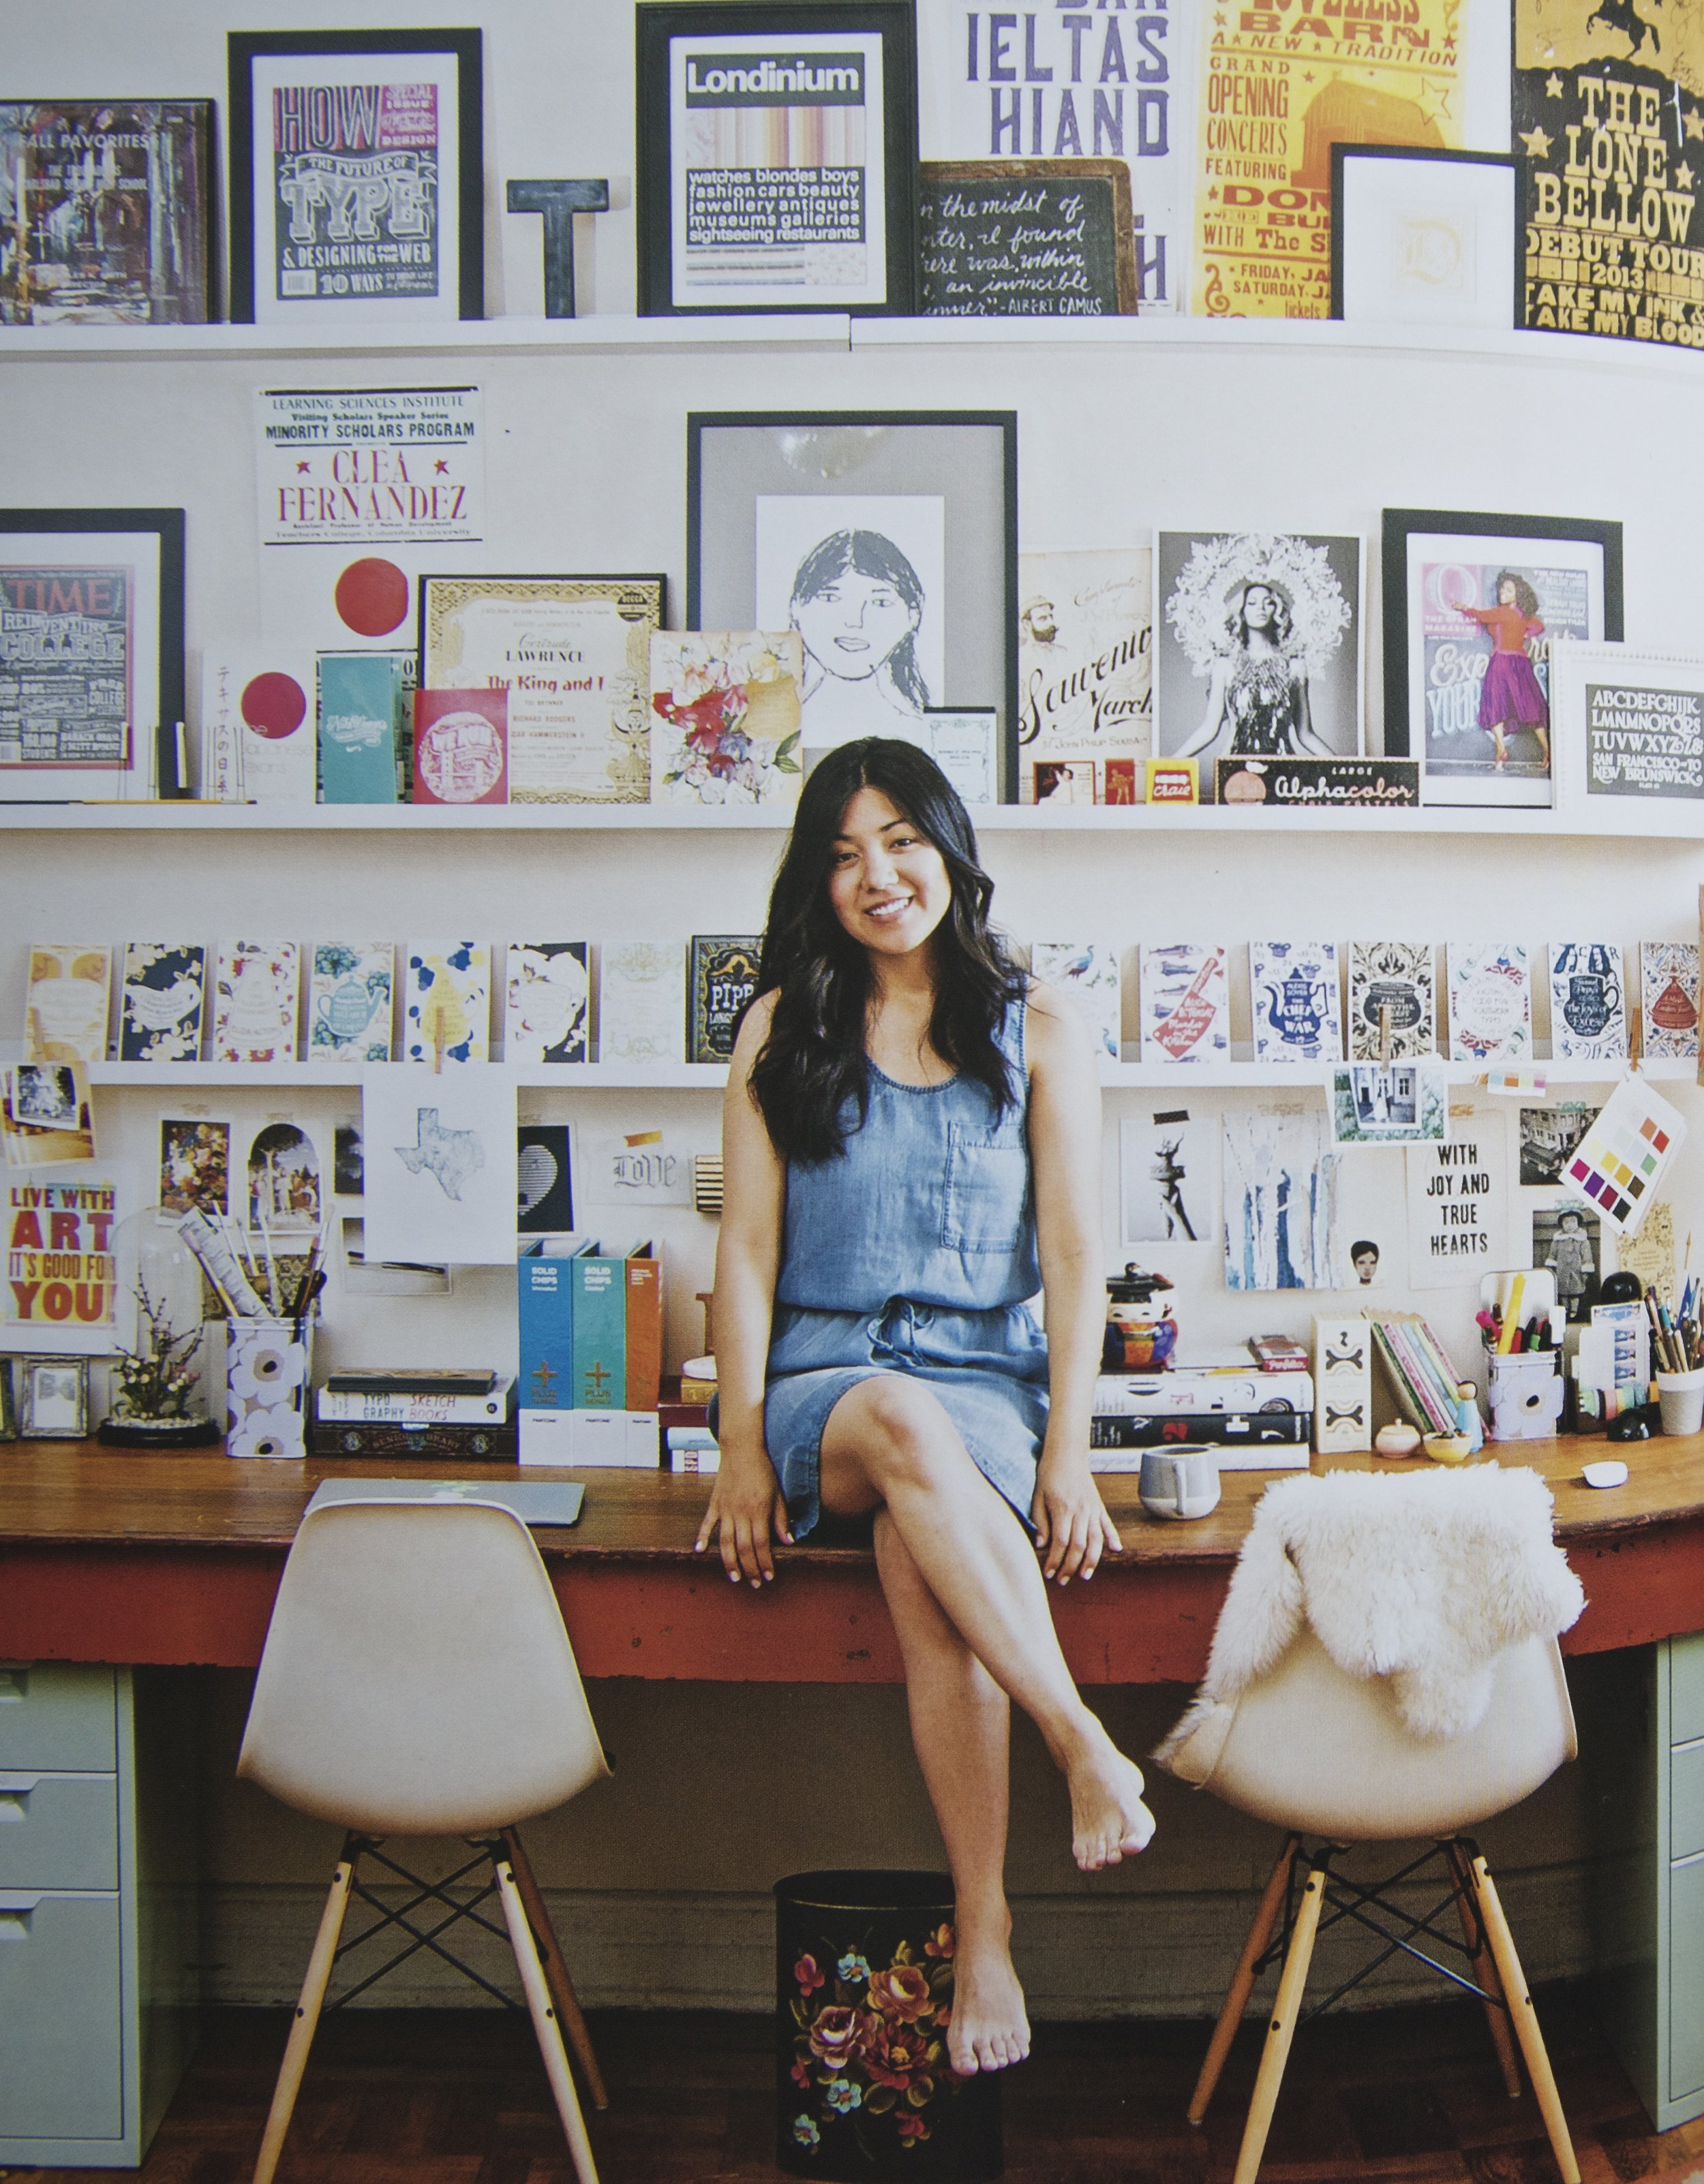 How incredible is the work space of Dana Tanamachi! Loved her interview on page 203.